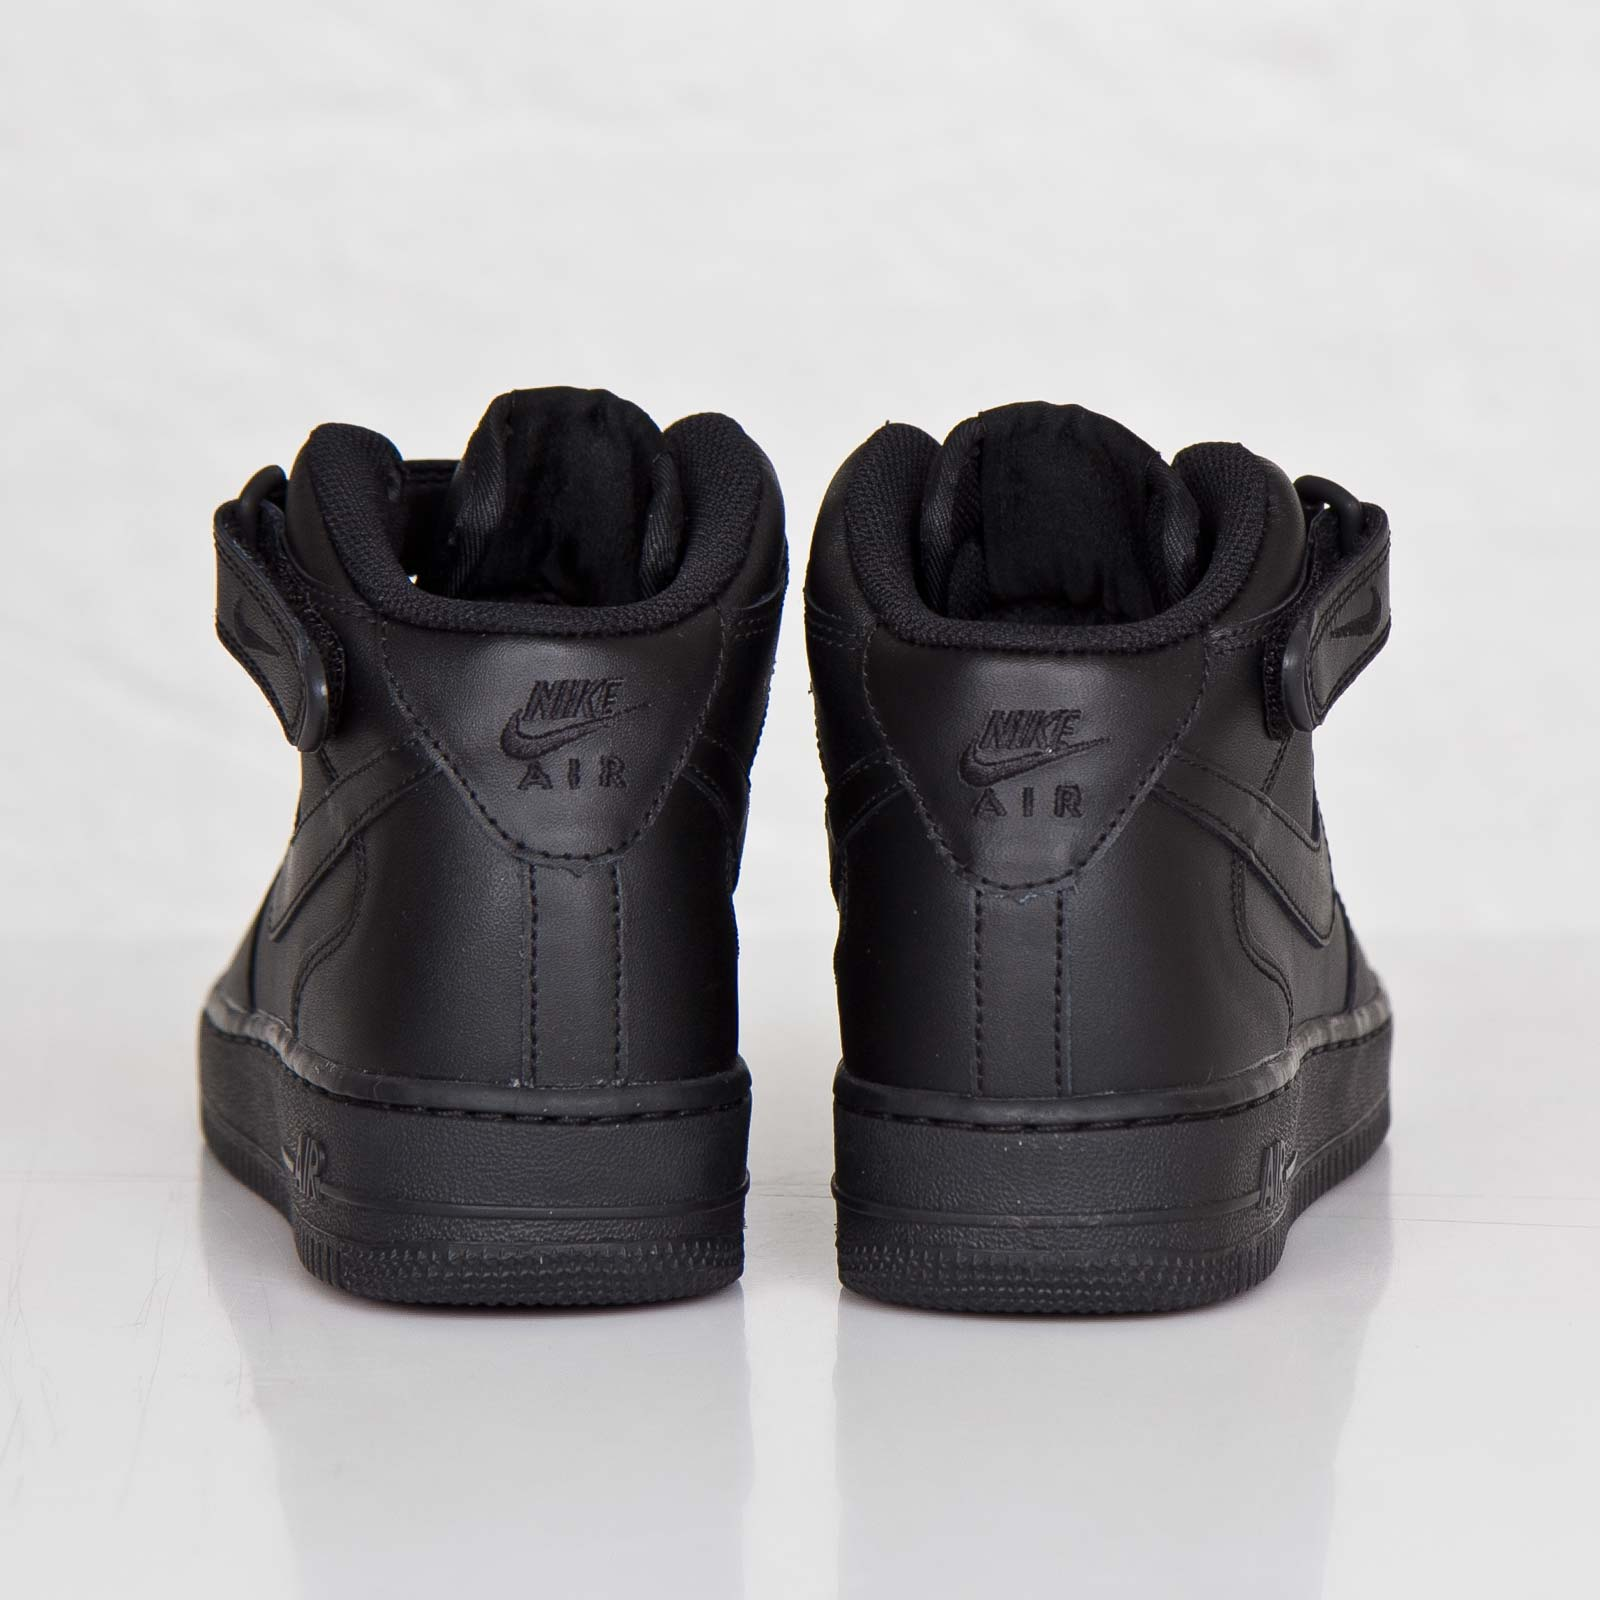 competitive price ed7be 8be90 Nike Wmns Air Force 1 Mid 07 LE - 366731-001 - Sneakersnstuff   sneakers   streetwear  online since 1999